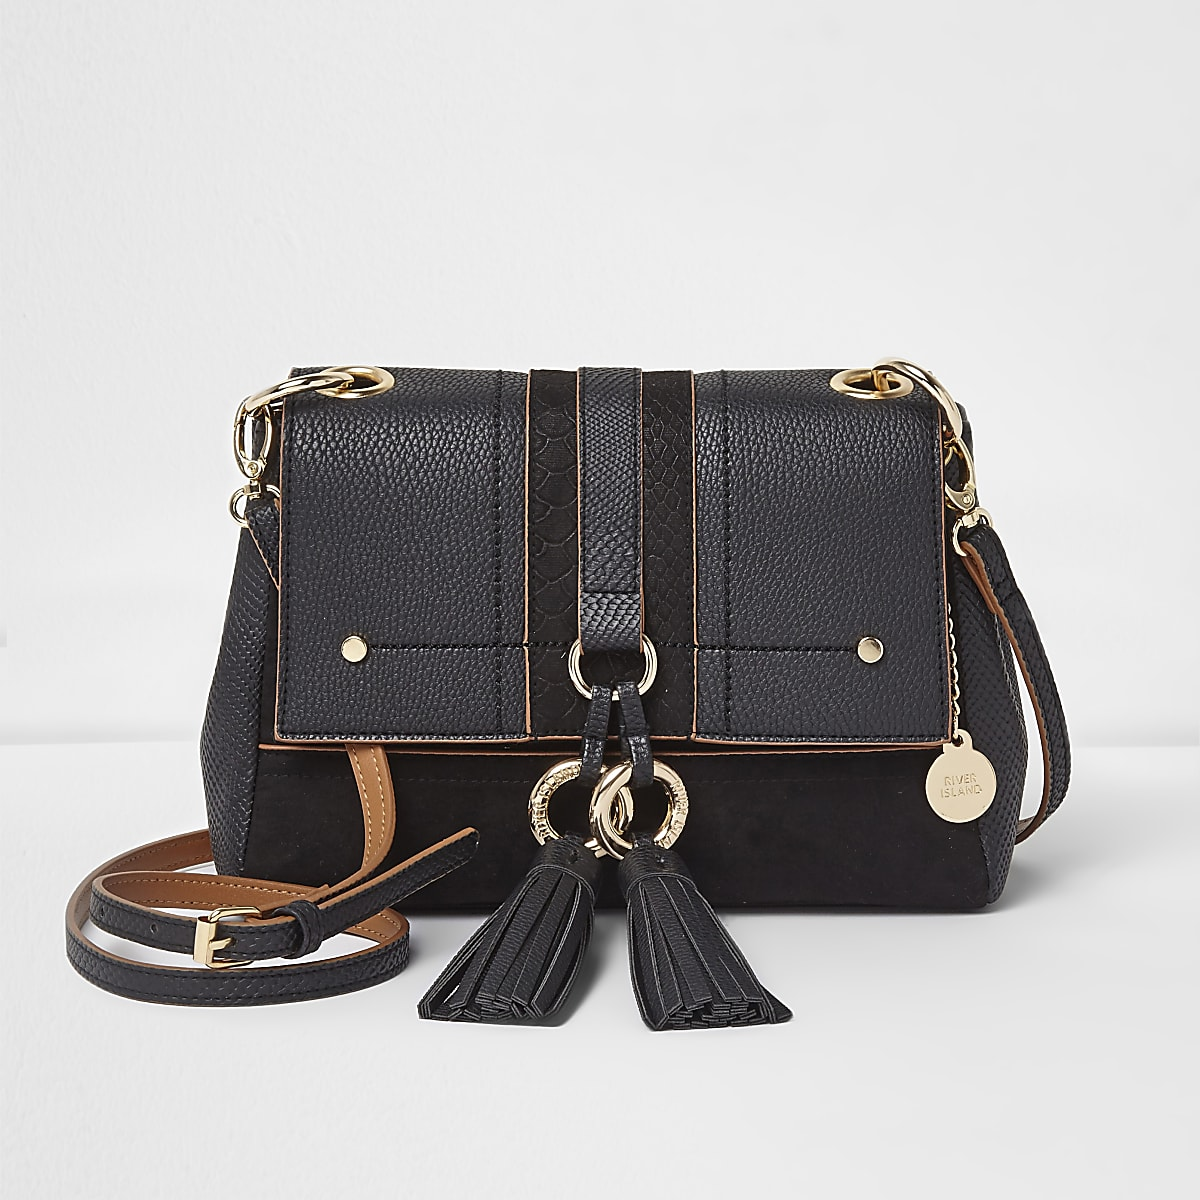 Black double ring tassel crossbody bag